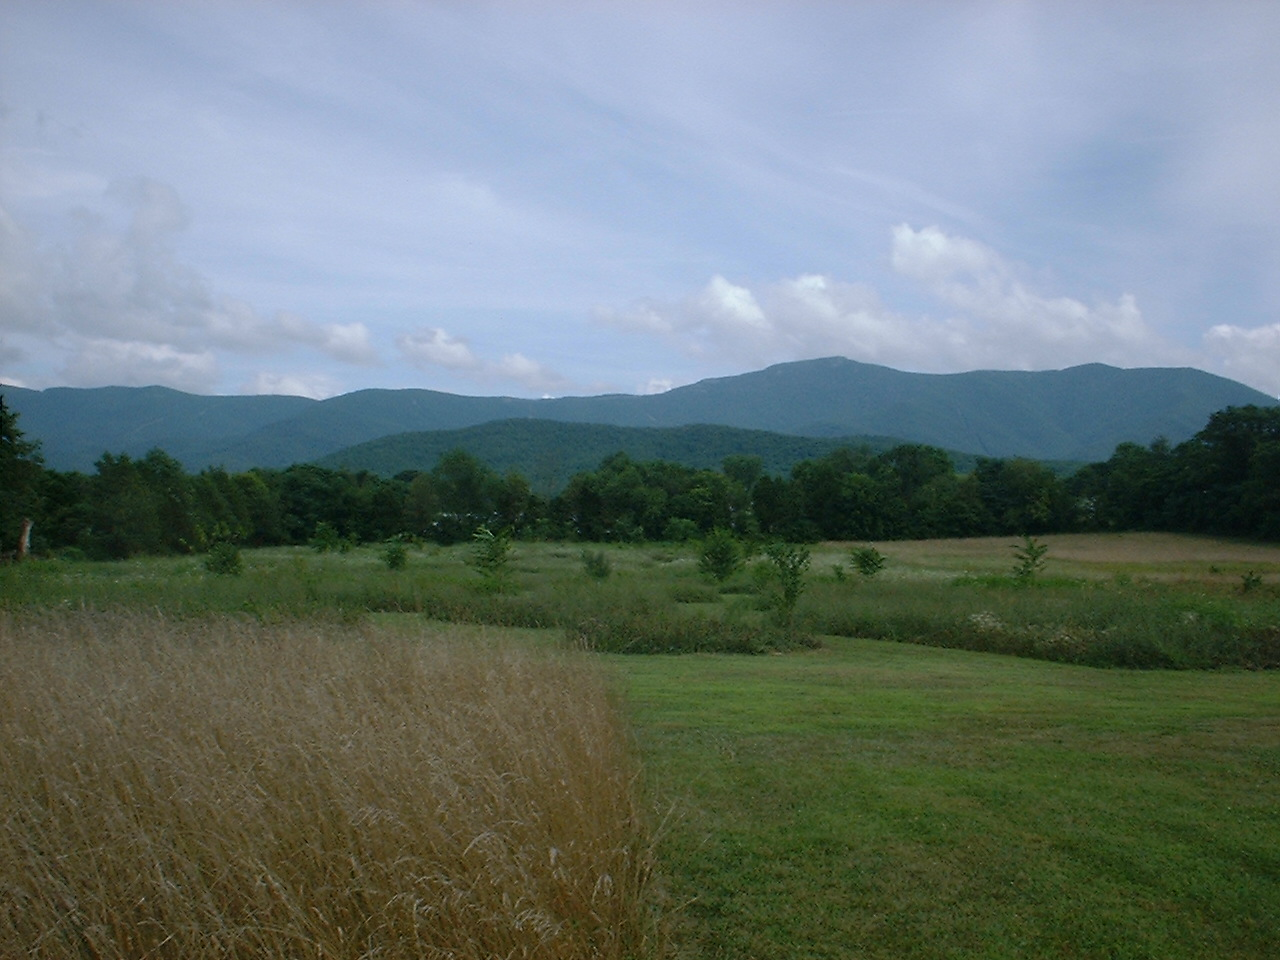 Luray, Virginia lots and property for sale